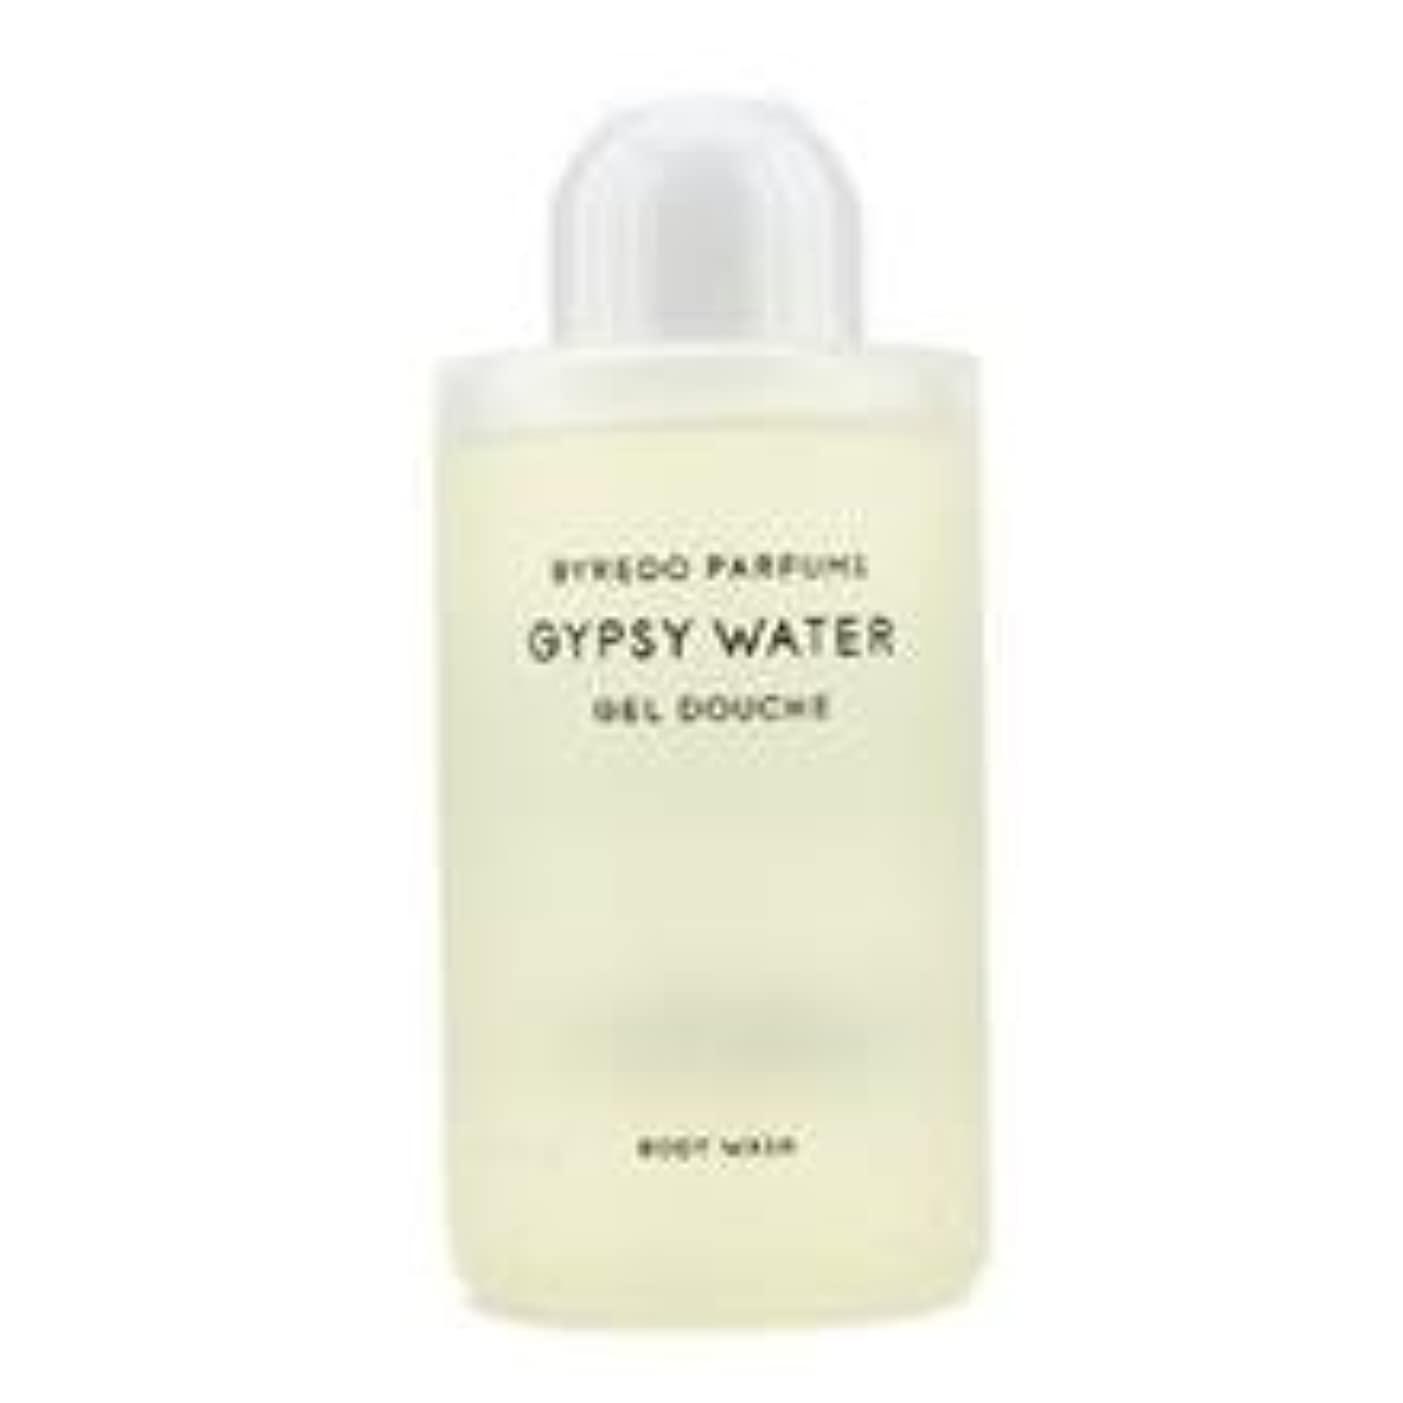 ブラシつまずく旅客Byredo Gypsy Water Body Wash 225ml/7.6oz by Byredo